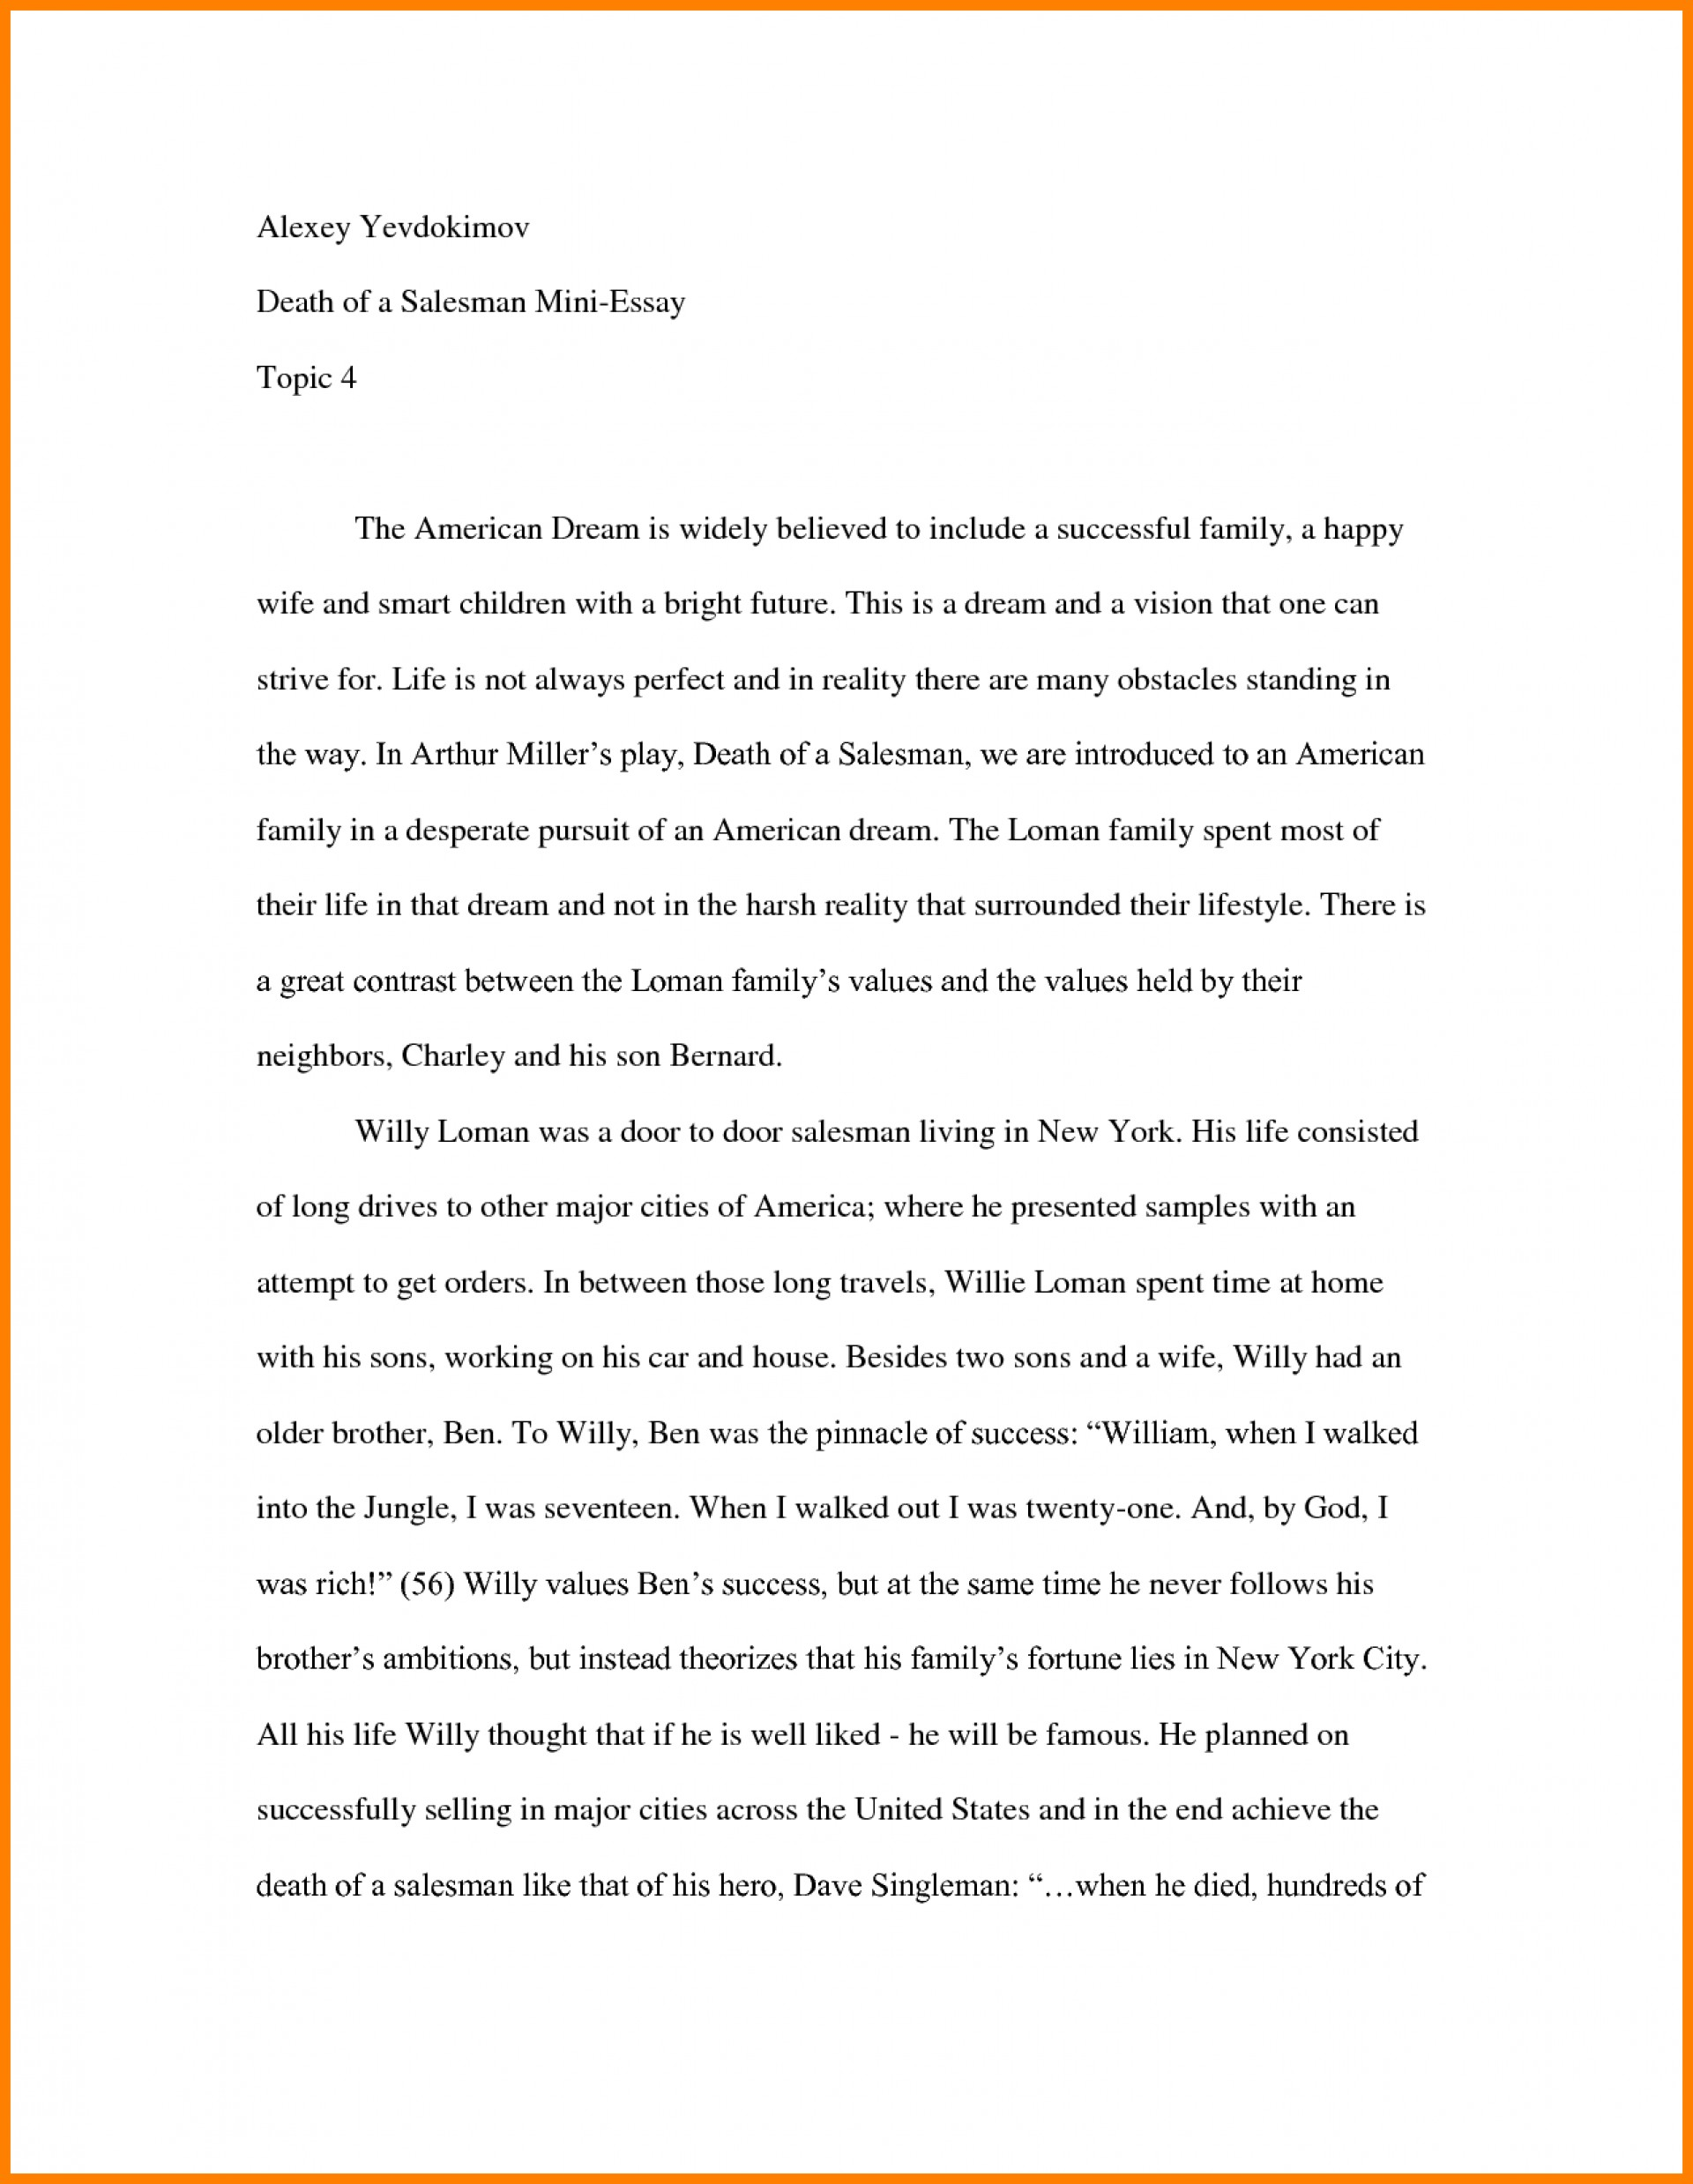 005 How To Begin An Essay Start Off About Yourself Incredible Write On A Book You Didn't Read Open Paragraph For College 1920